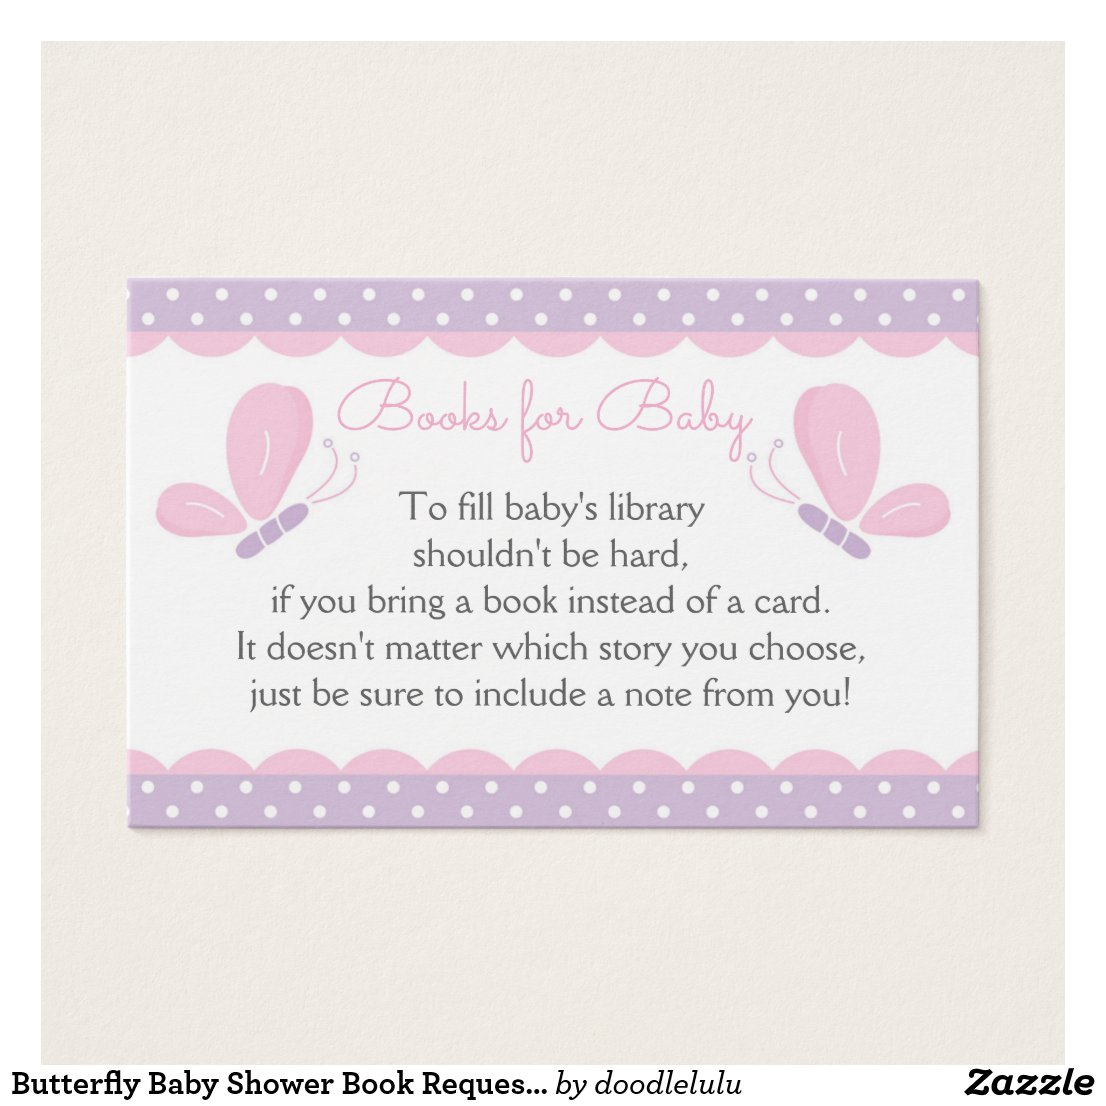 Butterfly Baby Shower Book Request Card purplepink